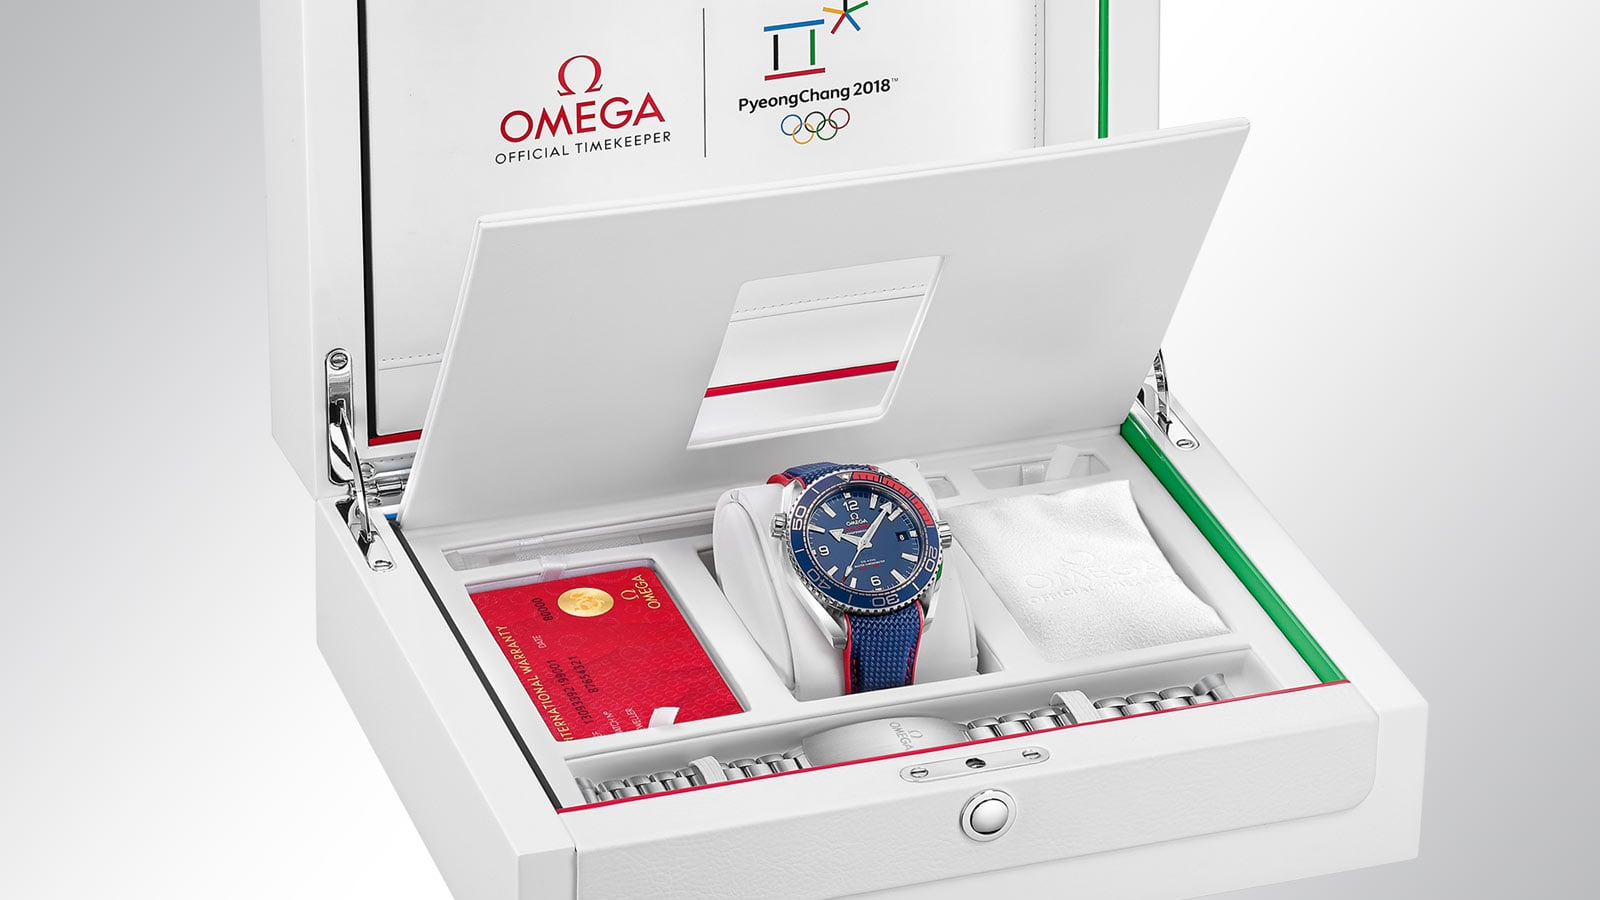 """Pyeongchang 2018"" Limited Edition watch in its white presentation box"